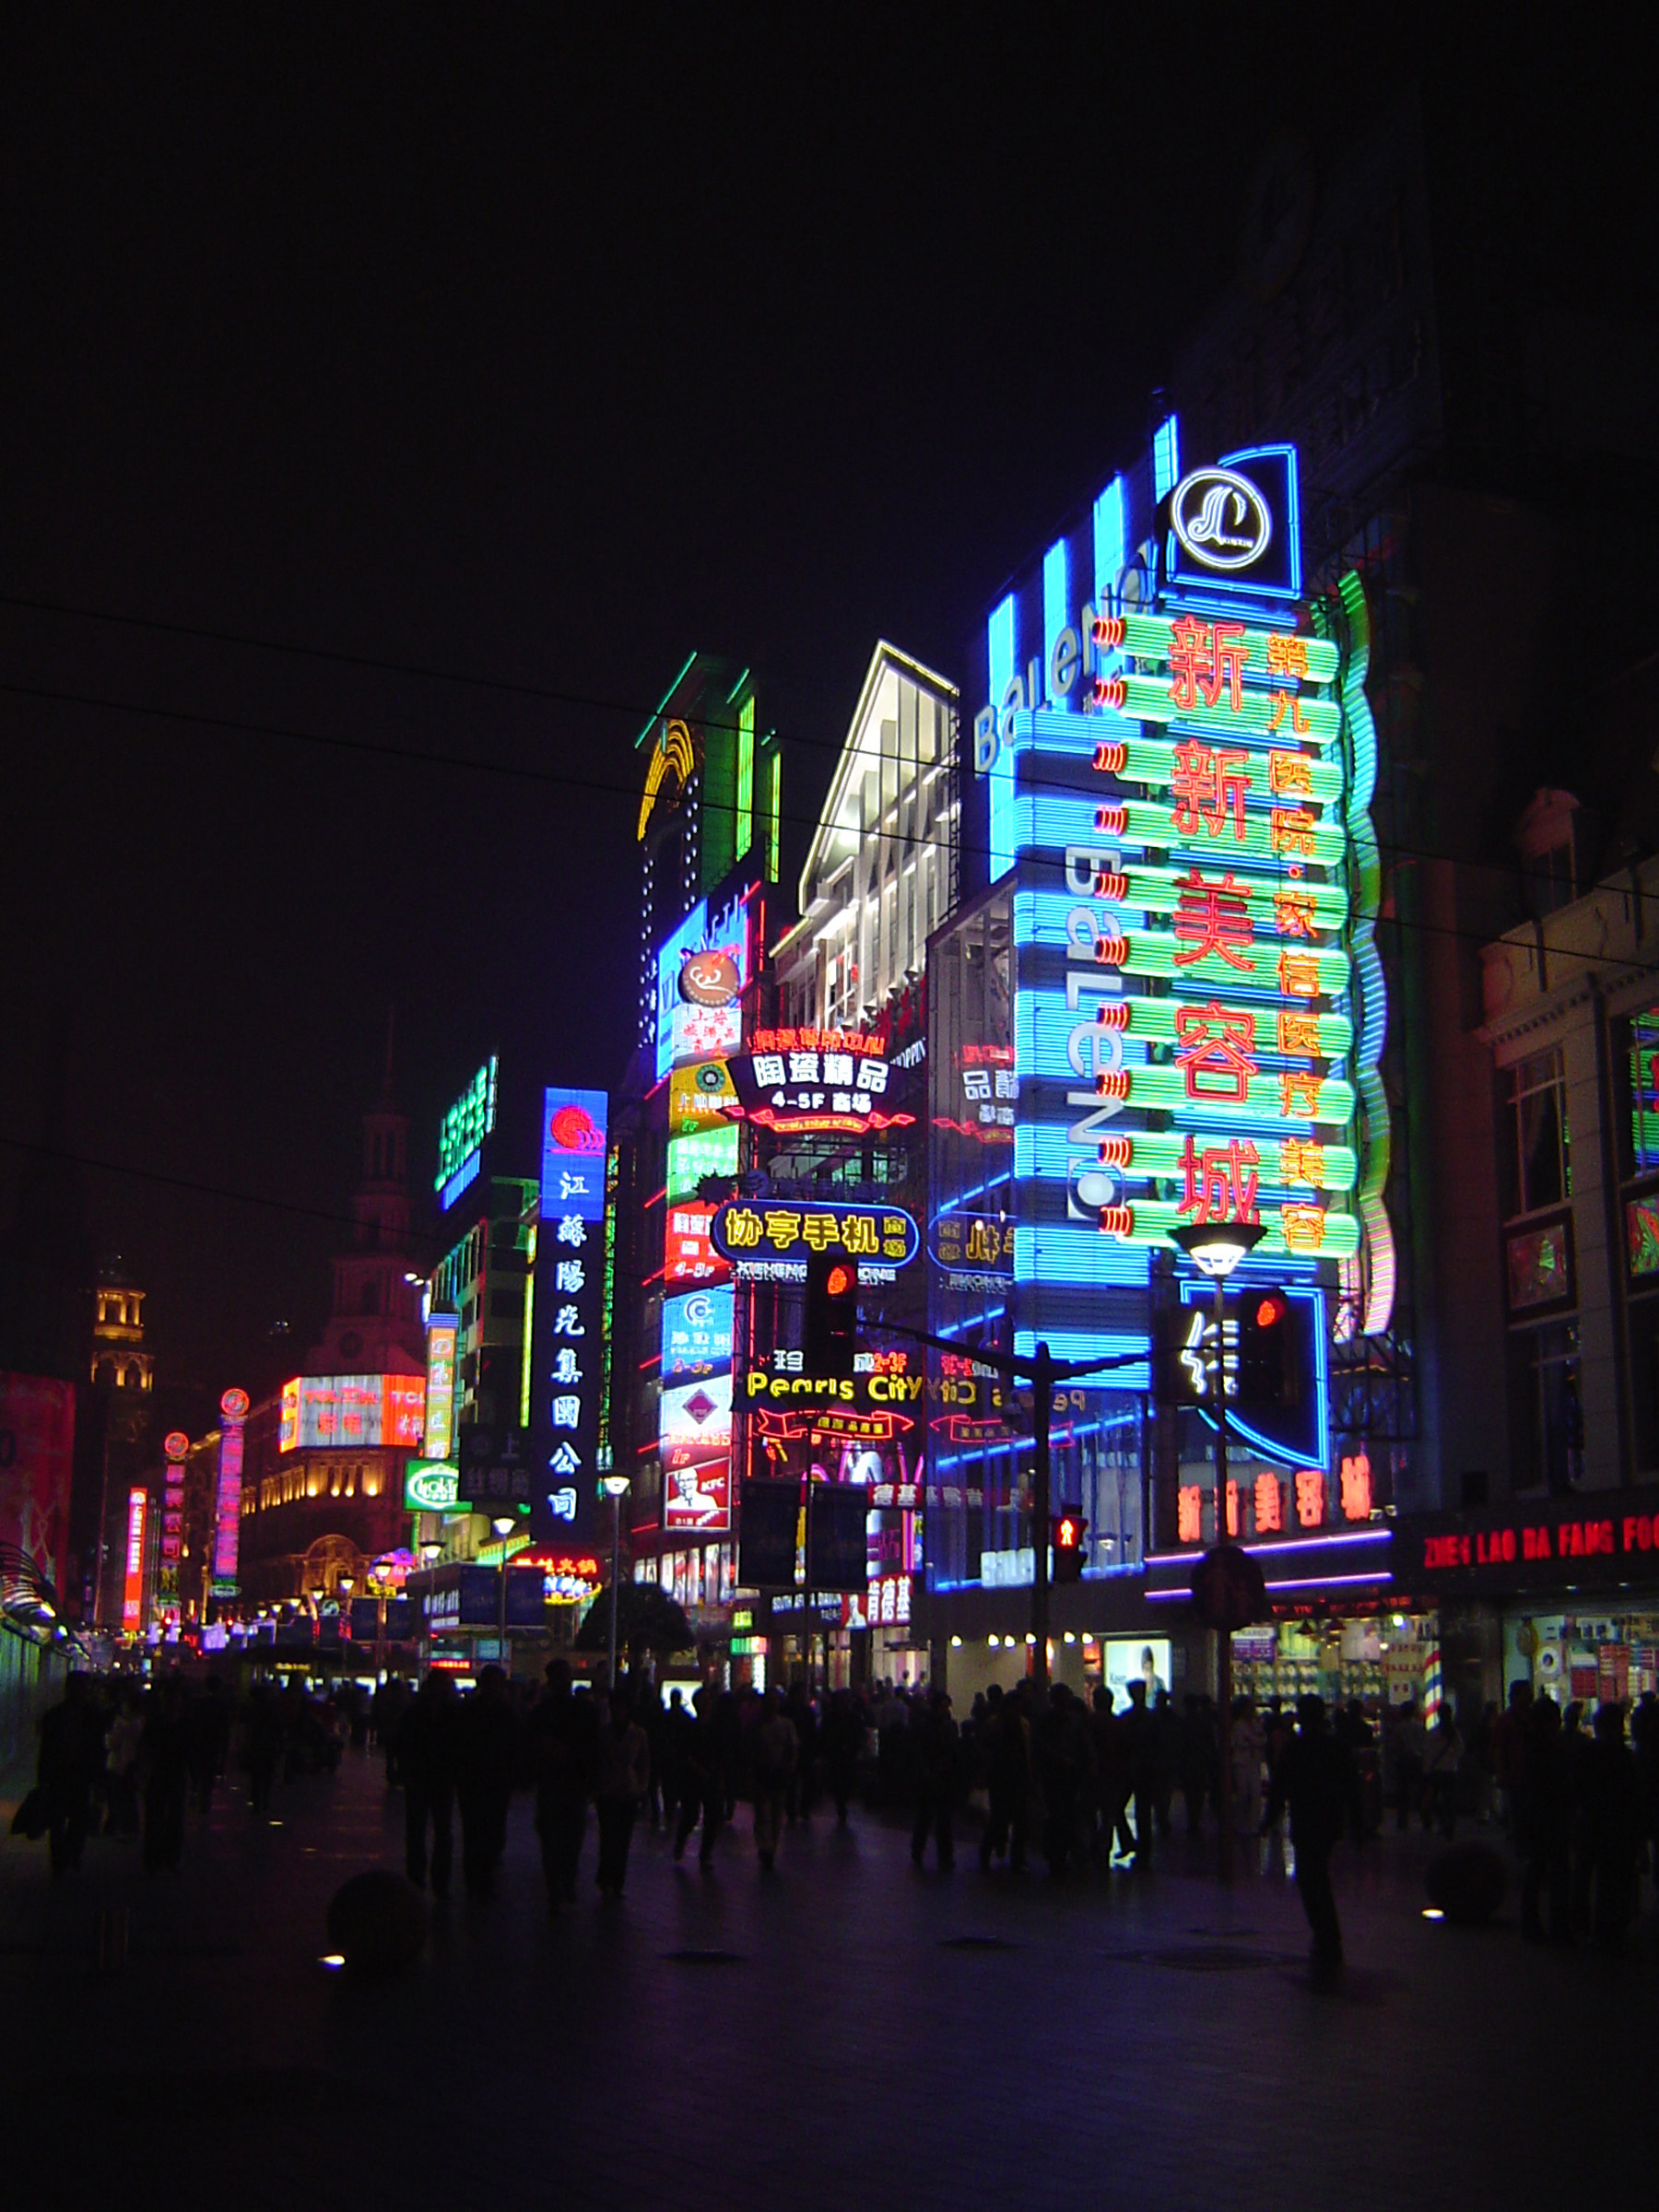 Attractive Colorful Neon Lights From Various Commercial Buildings in Chinese City View at Night Time.